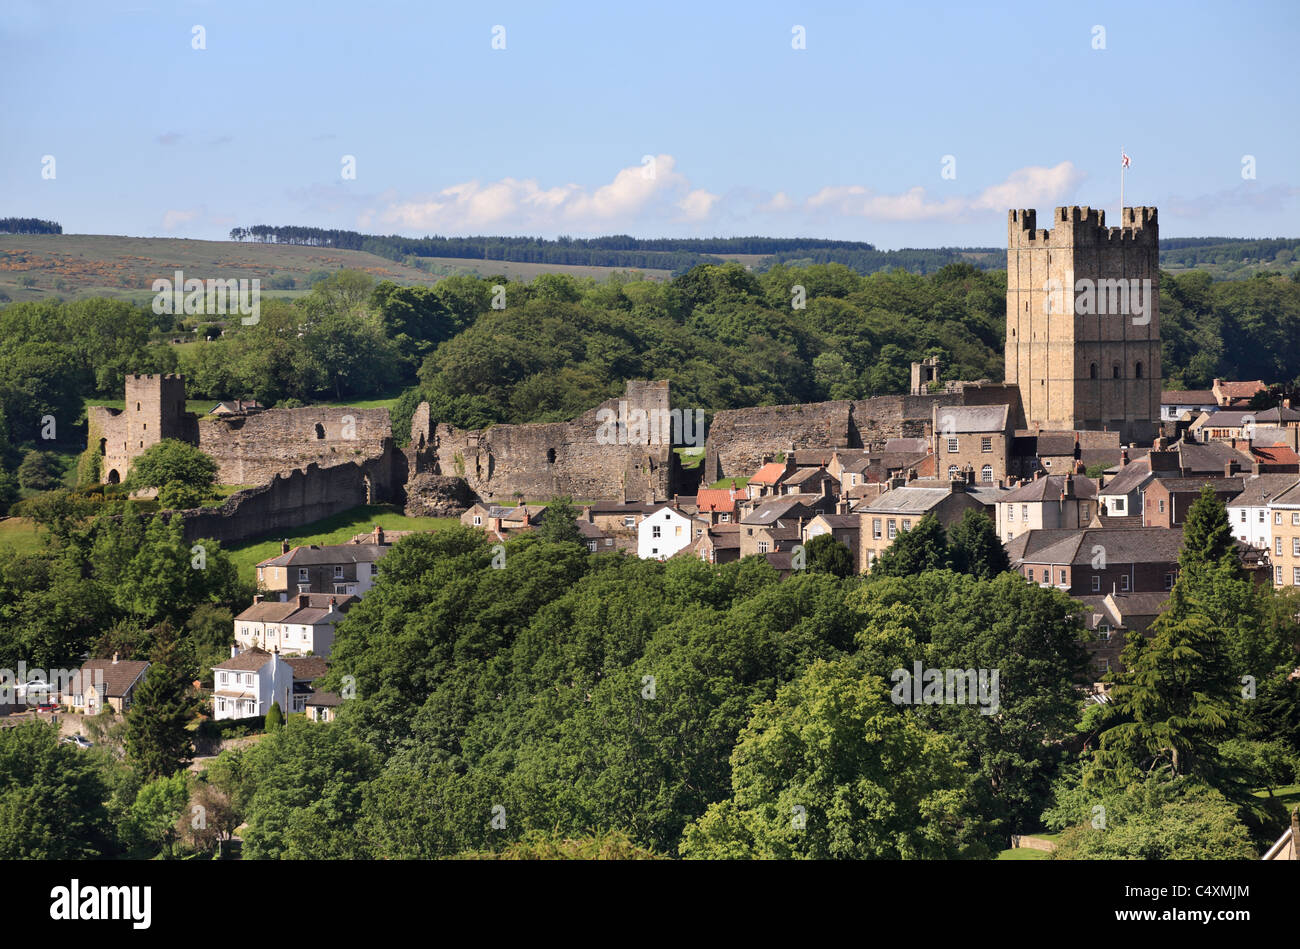 Richmond castle and town walls, North Yorkshire, England, UK - Stock Image